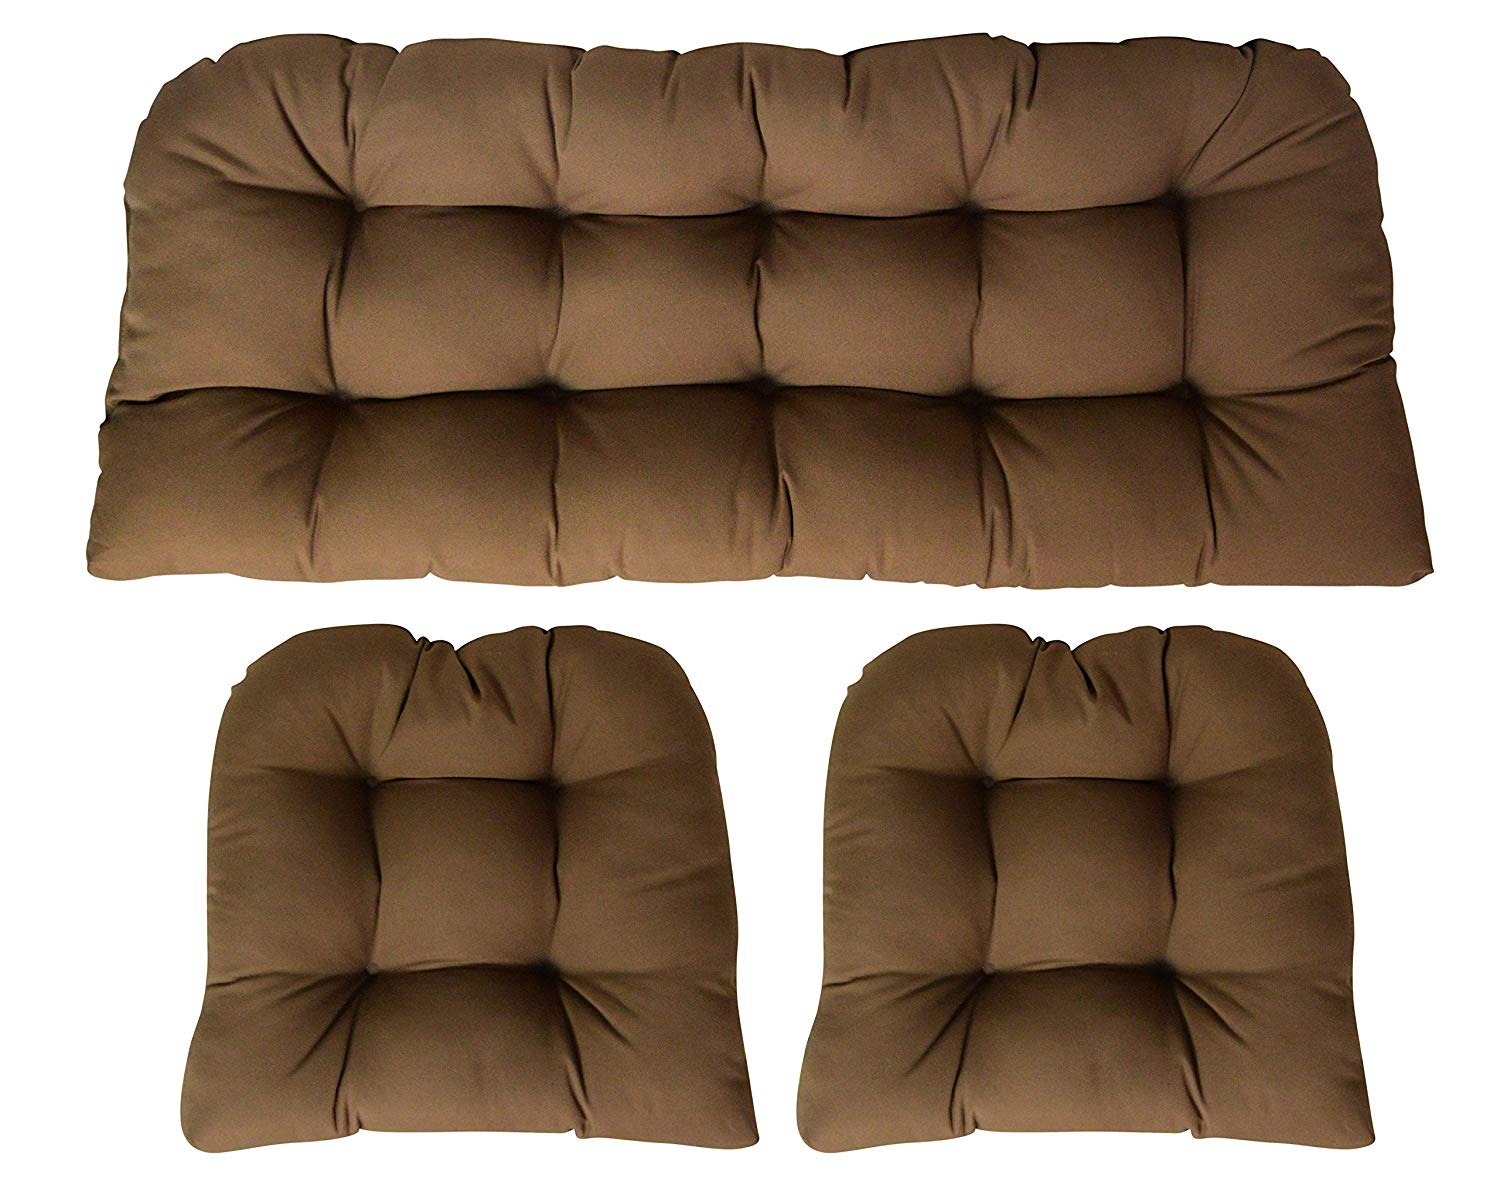 Sunbrella Canvas Chestnut 3 Piece Wicker Cushion Set - Indoor / Outdoor Wicker Loveseat Settee & 2 Matching Chair Cushions